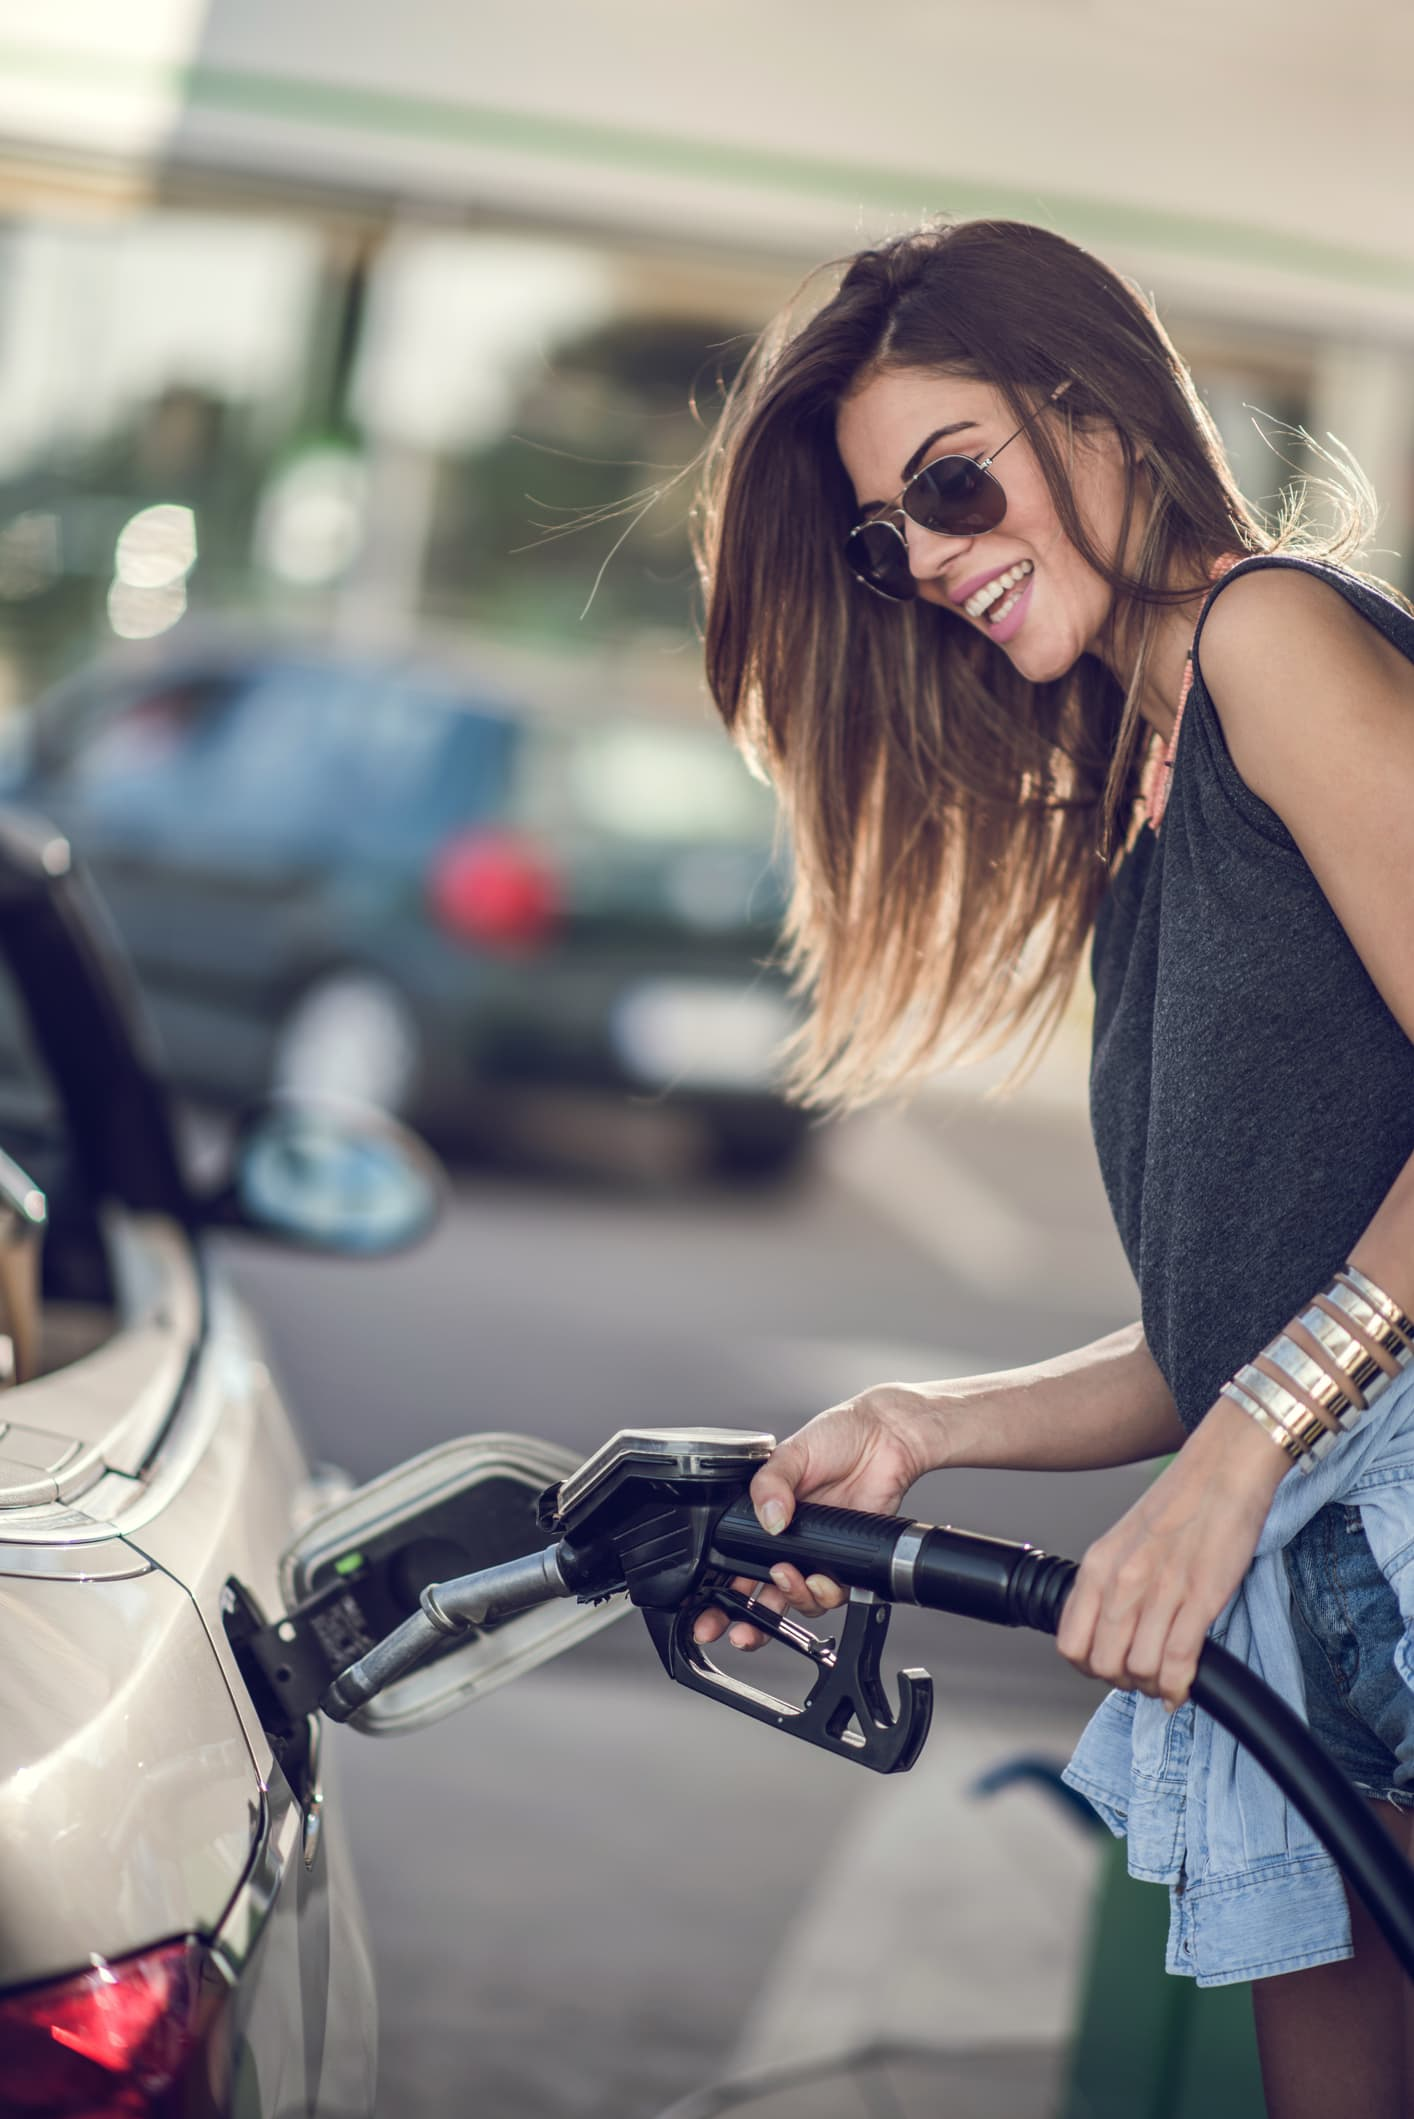 Young happy woman pumping gas at gas station.